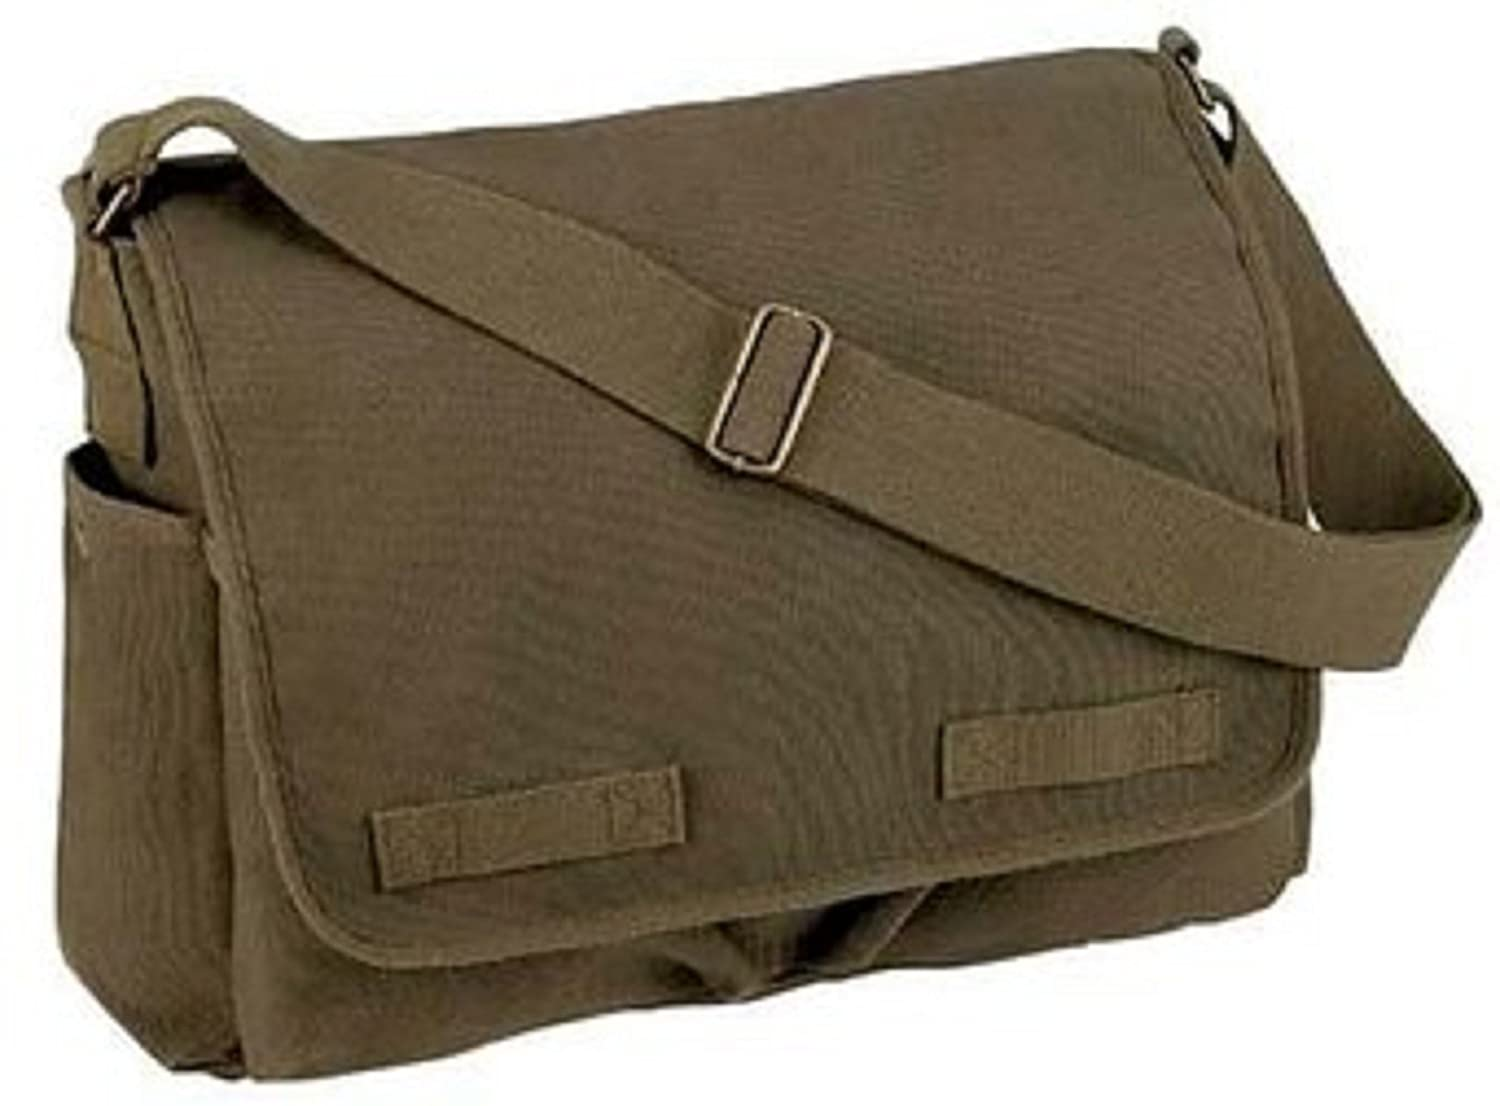 Amazon.com  9148 Messenger Bag Olive Drab  Clothing 6d57f824f76